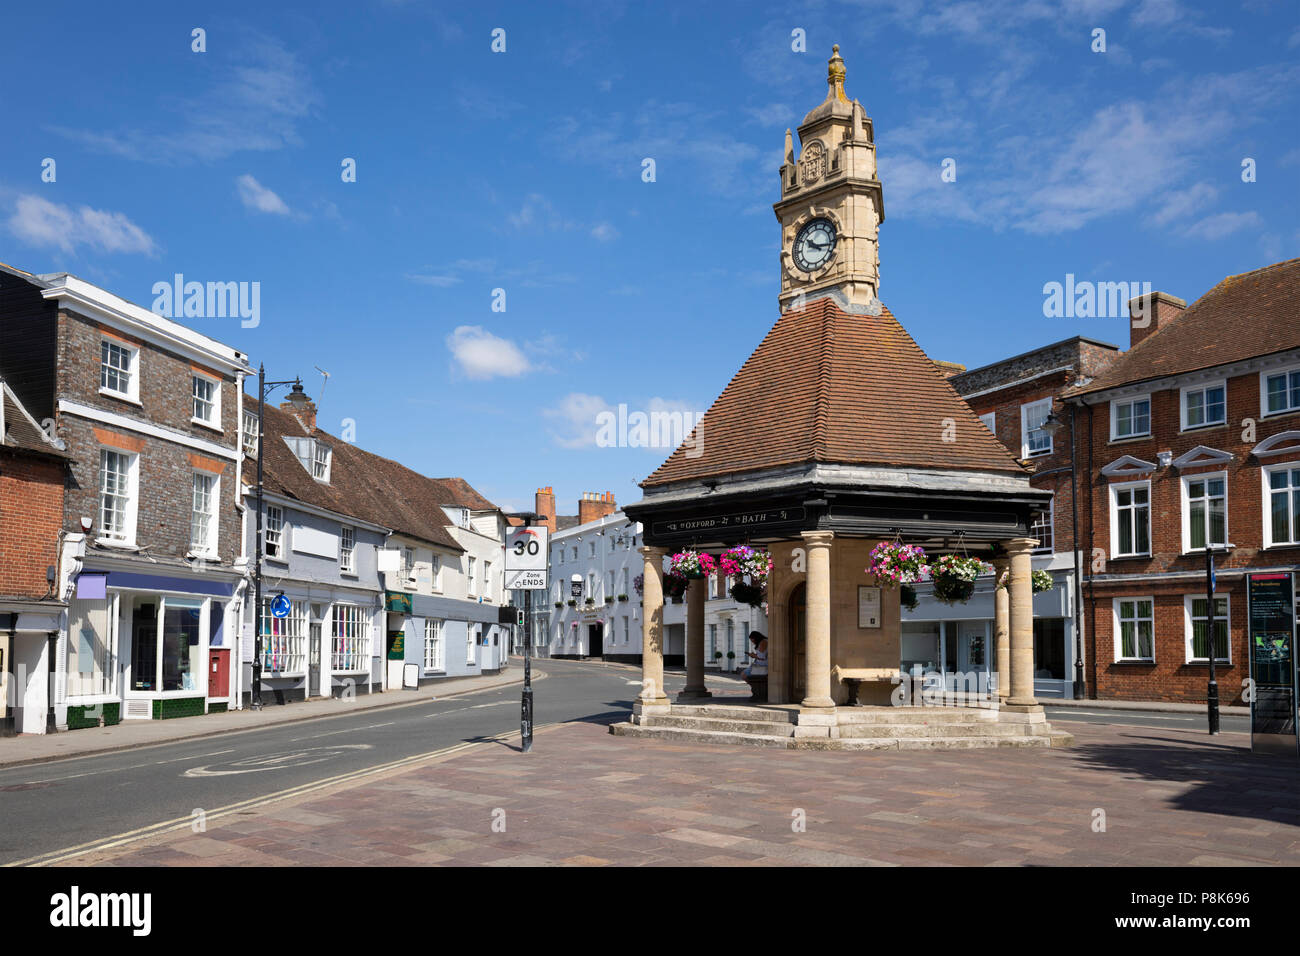 The Clock Tower and The Broadway, Newbury, West Berkshire, England, United Kingdom, Europe - Stock Image